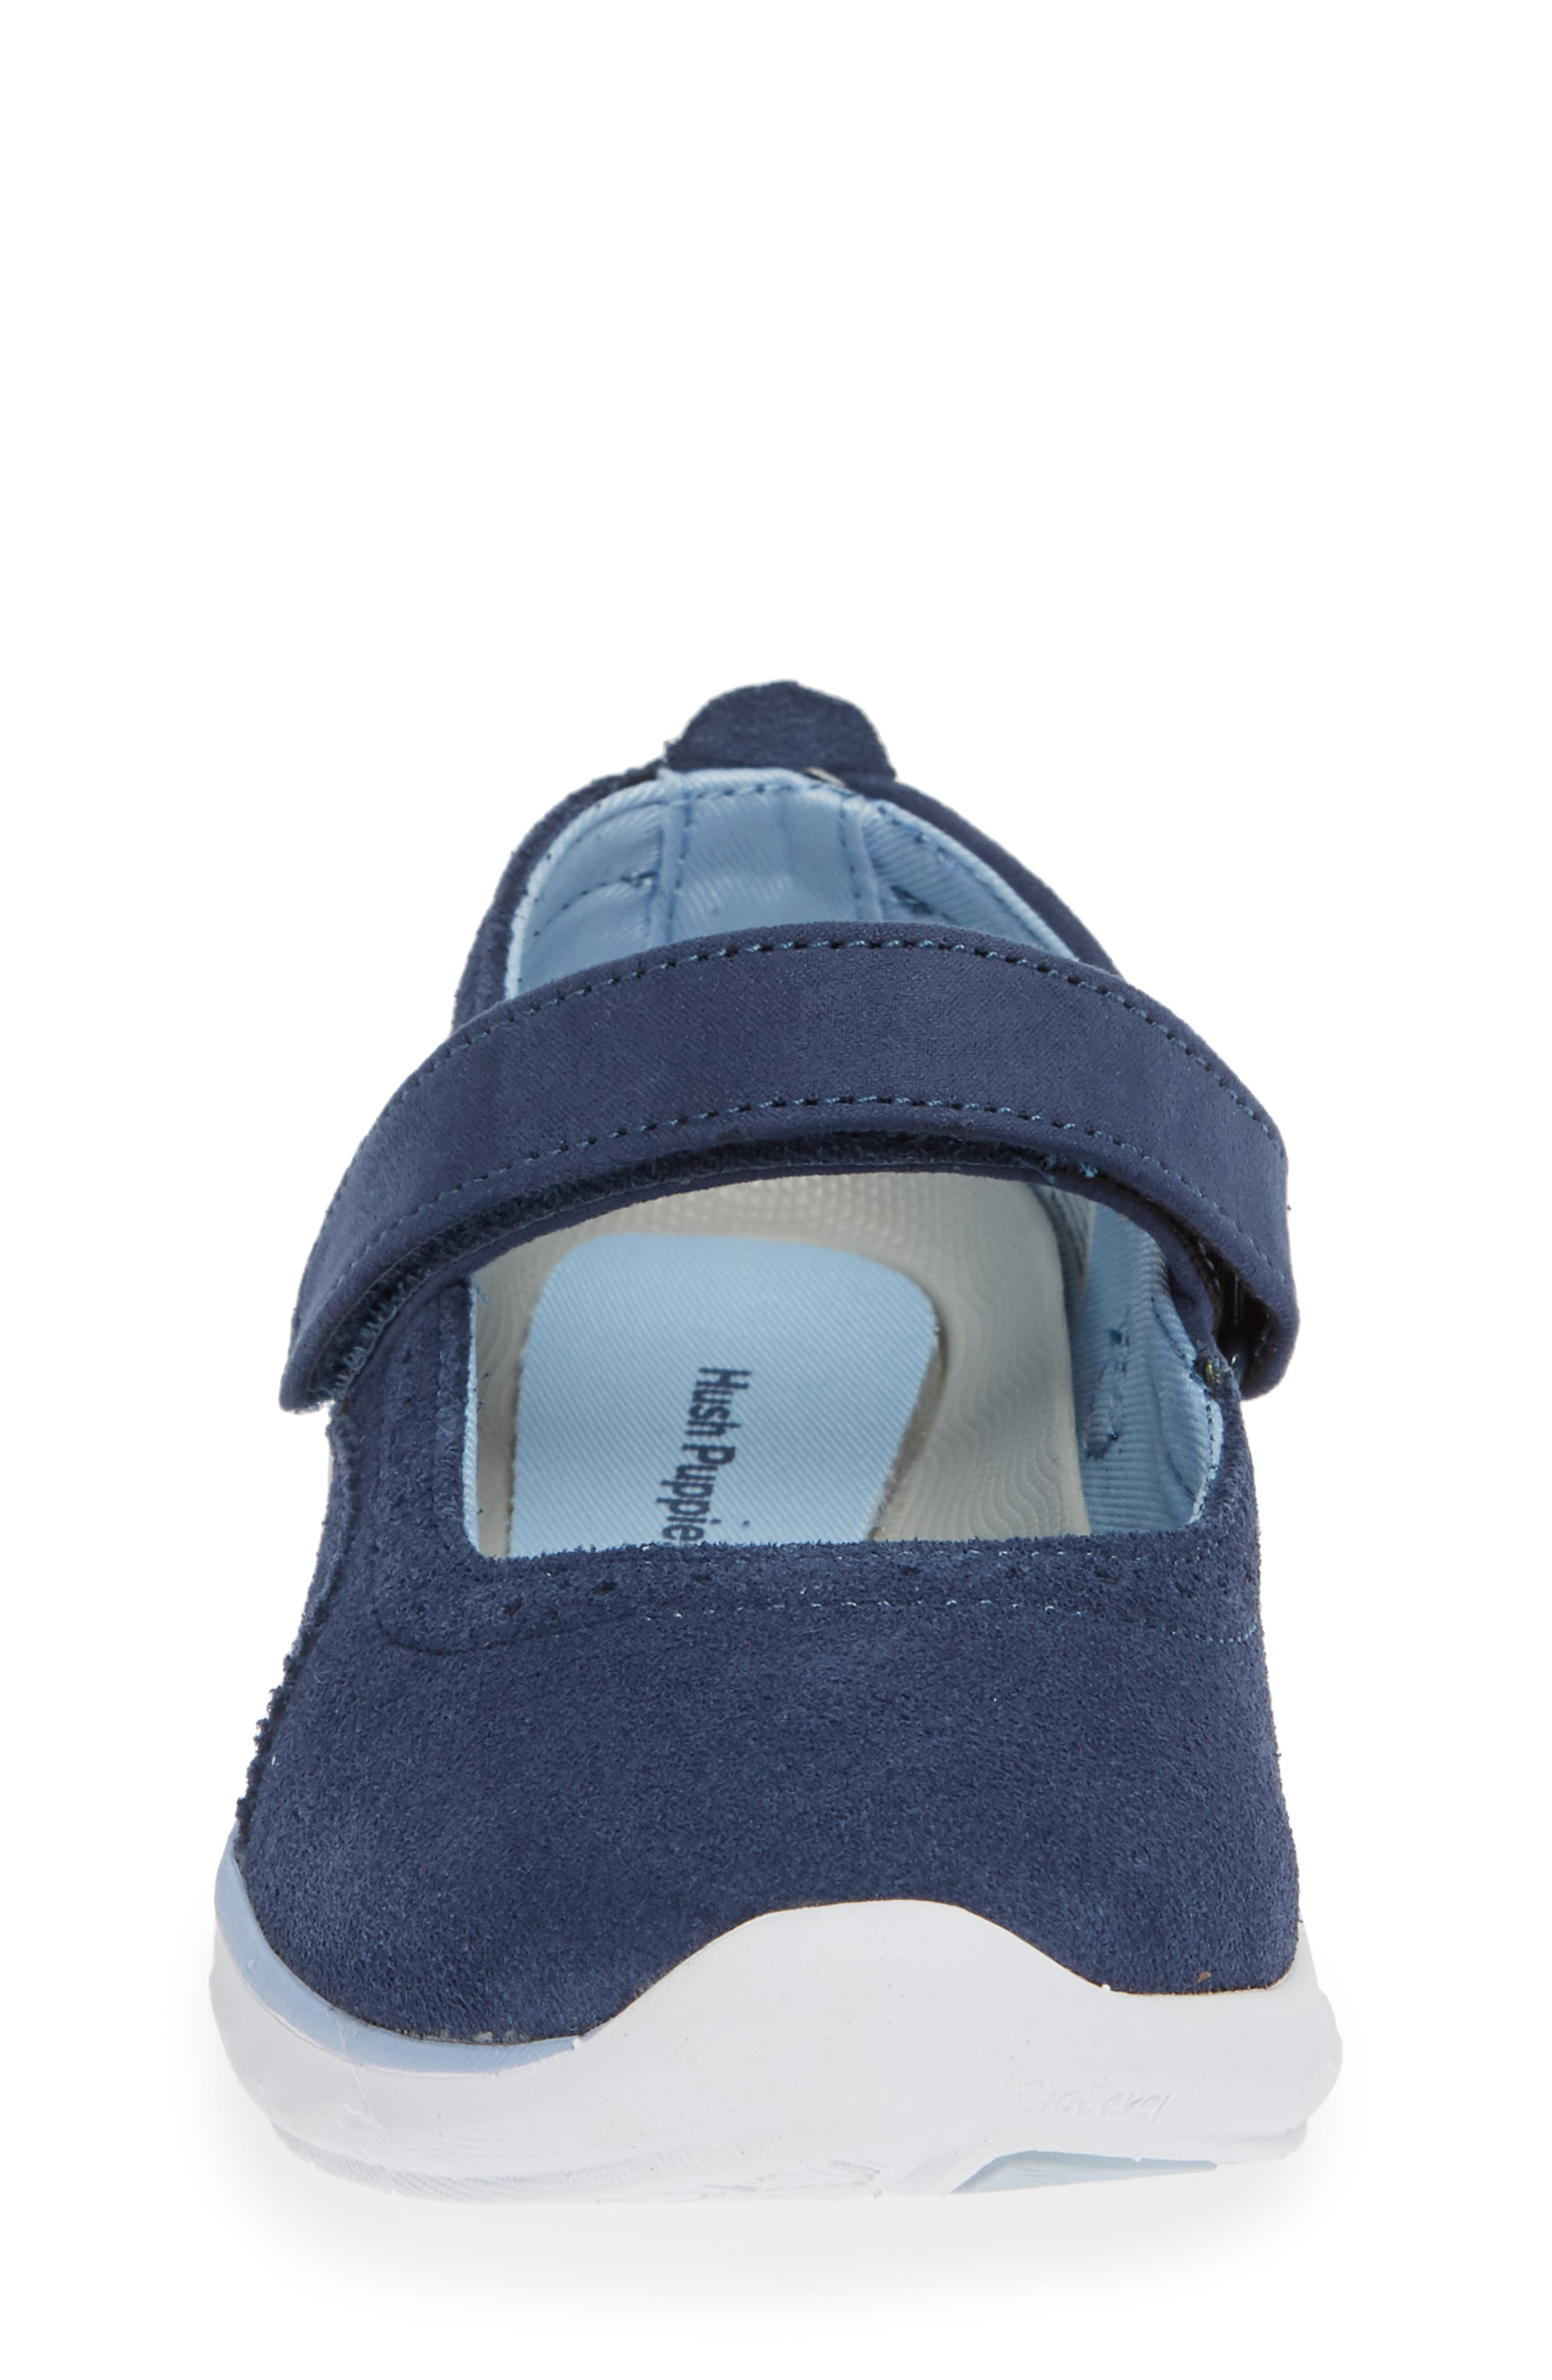 HUSH PUPPIES<SUP>®</SUP>, Flote Tricia Mary Jane Flat, Alternate thumbnail 4, color, NAVY